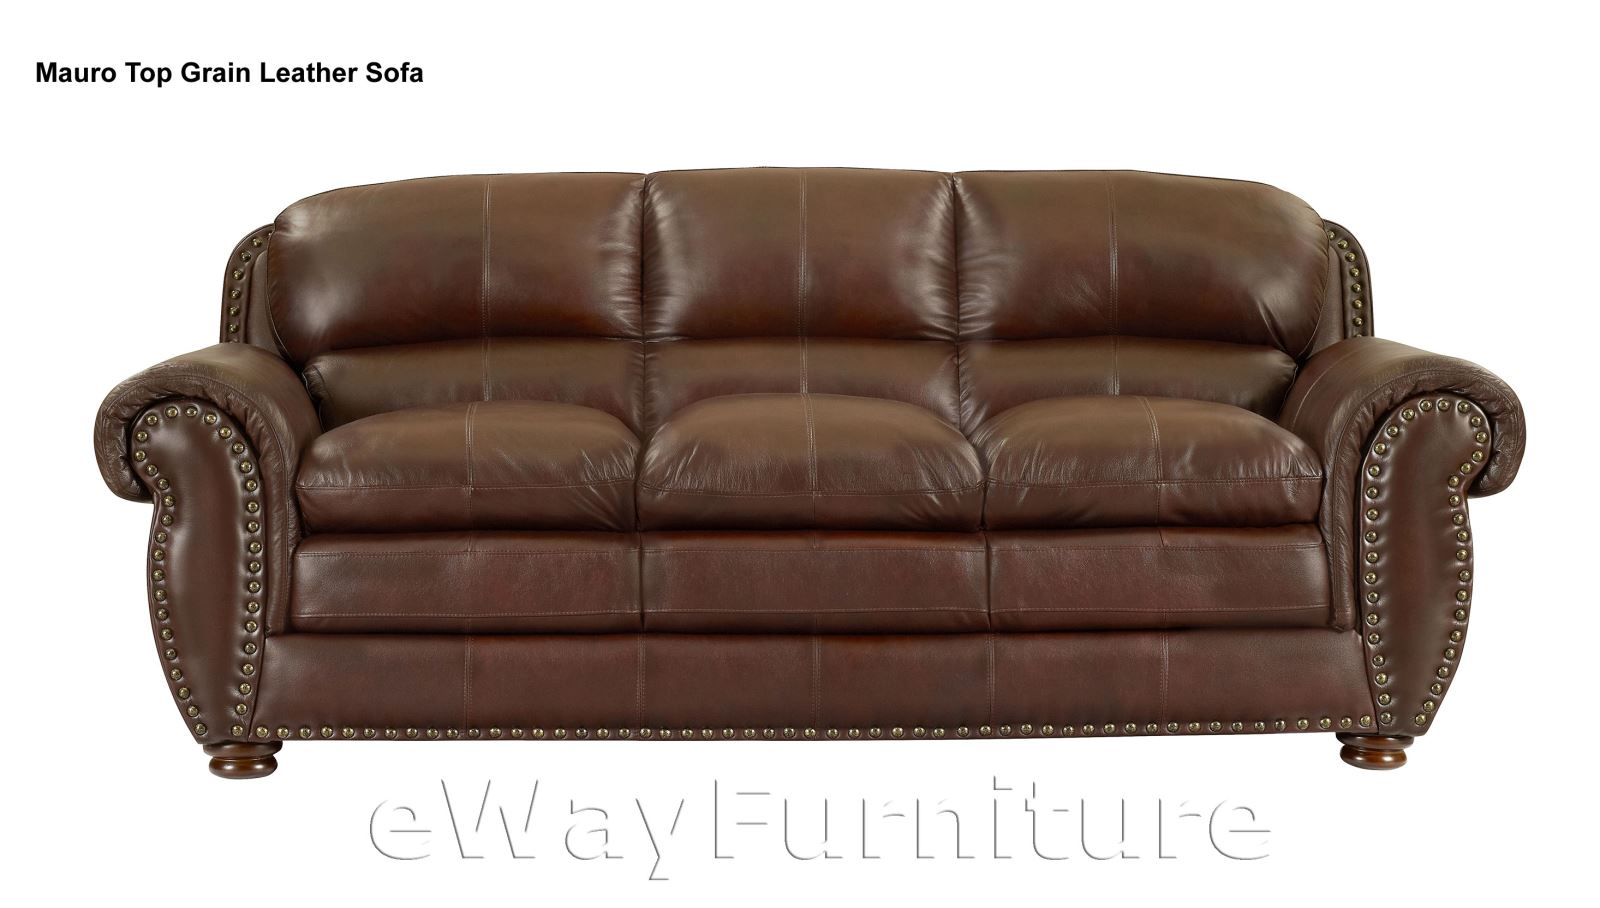 Mauro Top Grain Leather Sofa